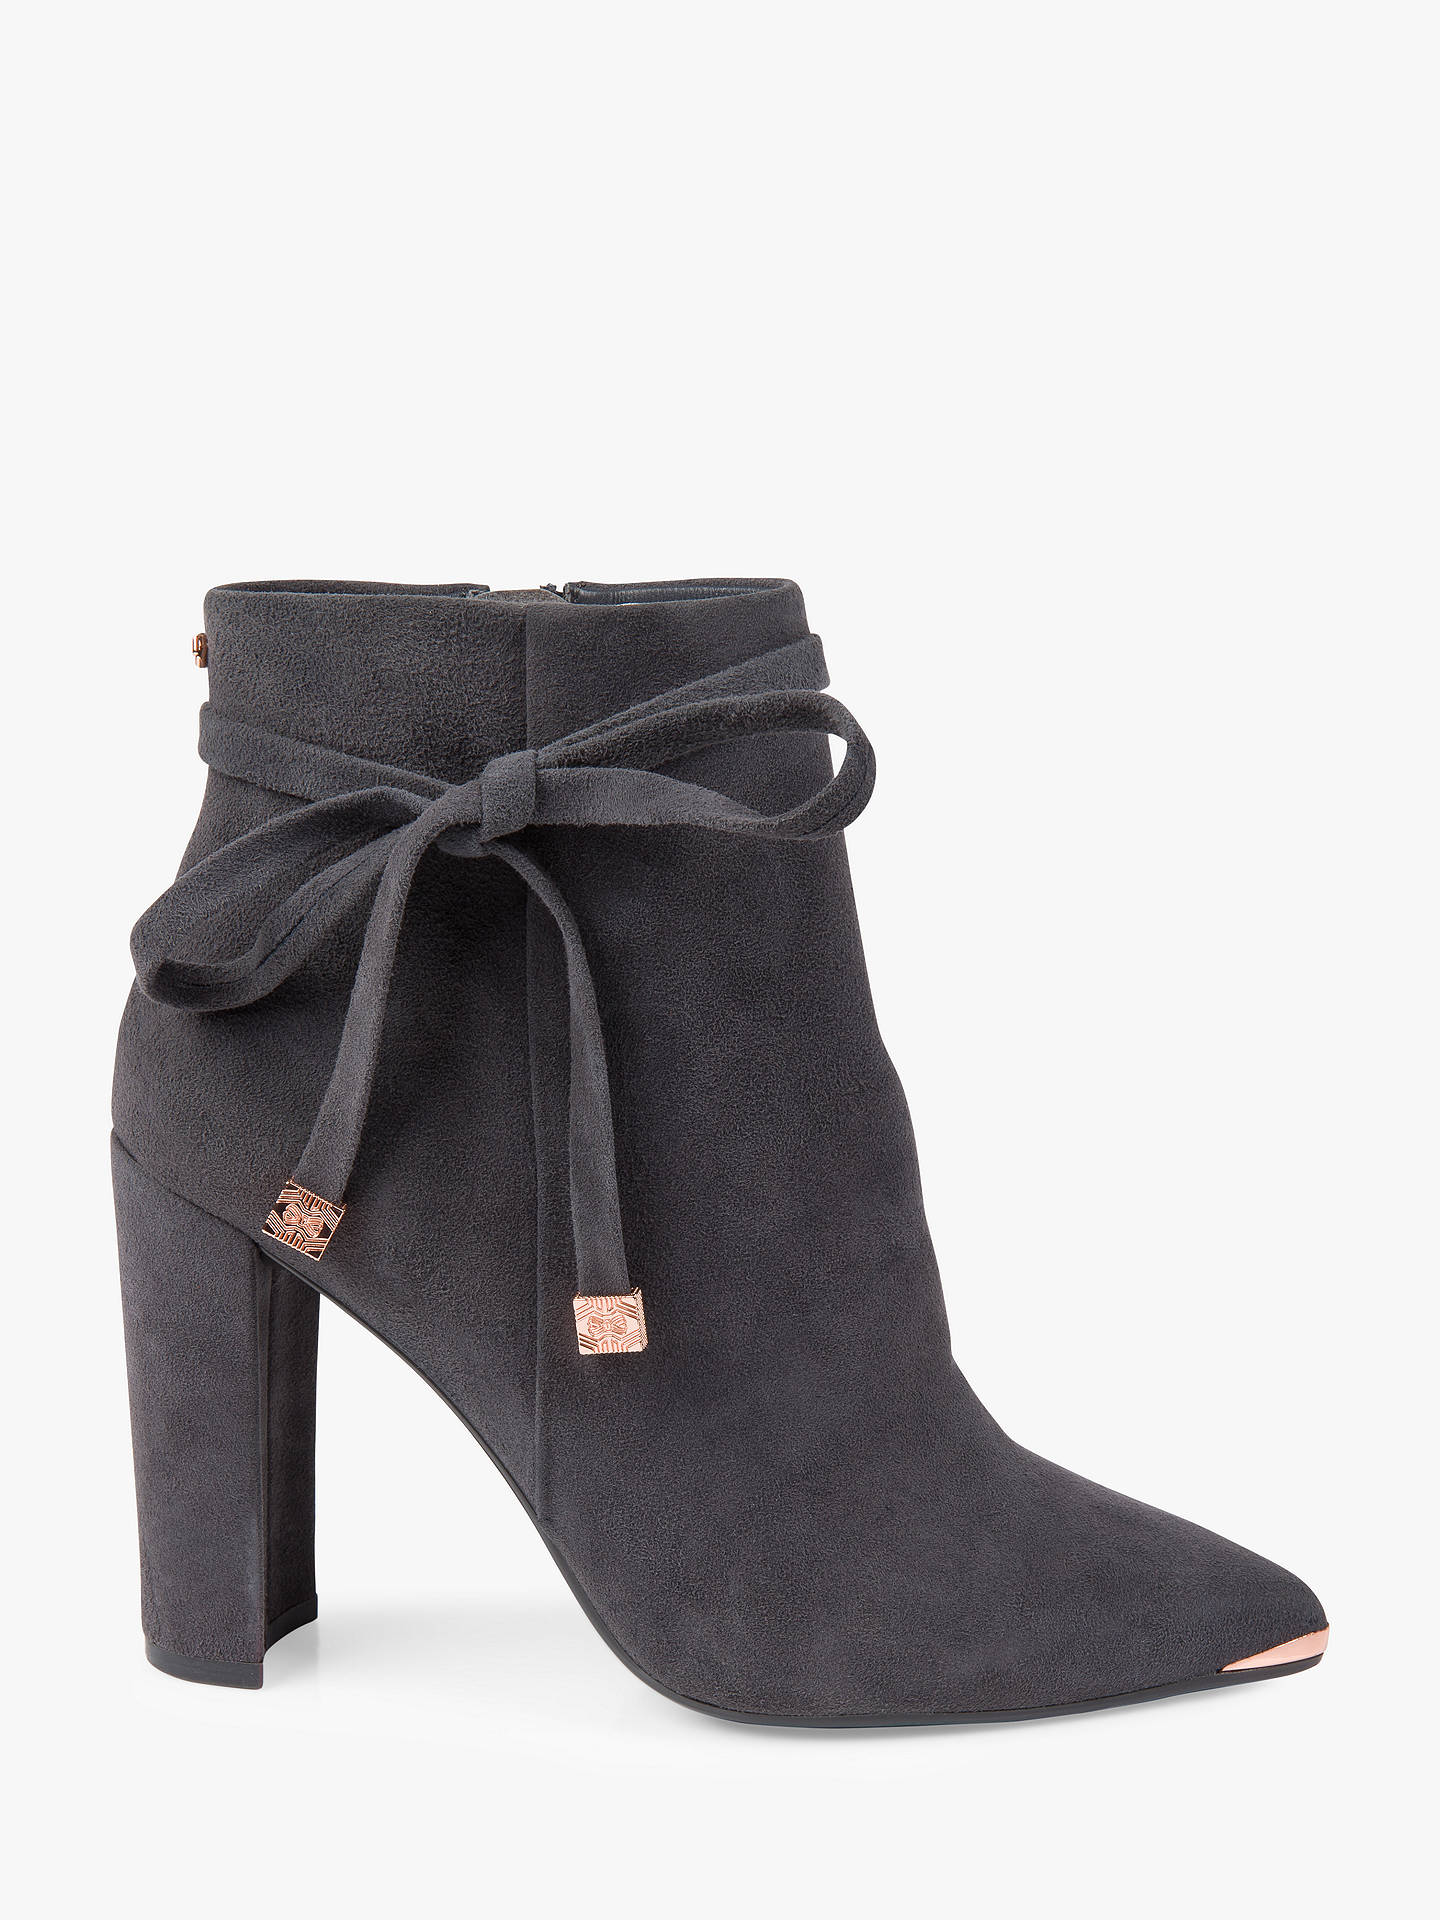 484bd8cb5 Ted Baker Qatena Tie Block Heel Ankle Boots at John Lewis   Partners